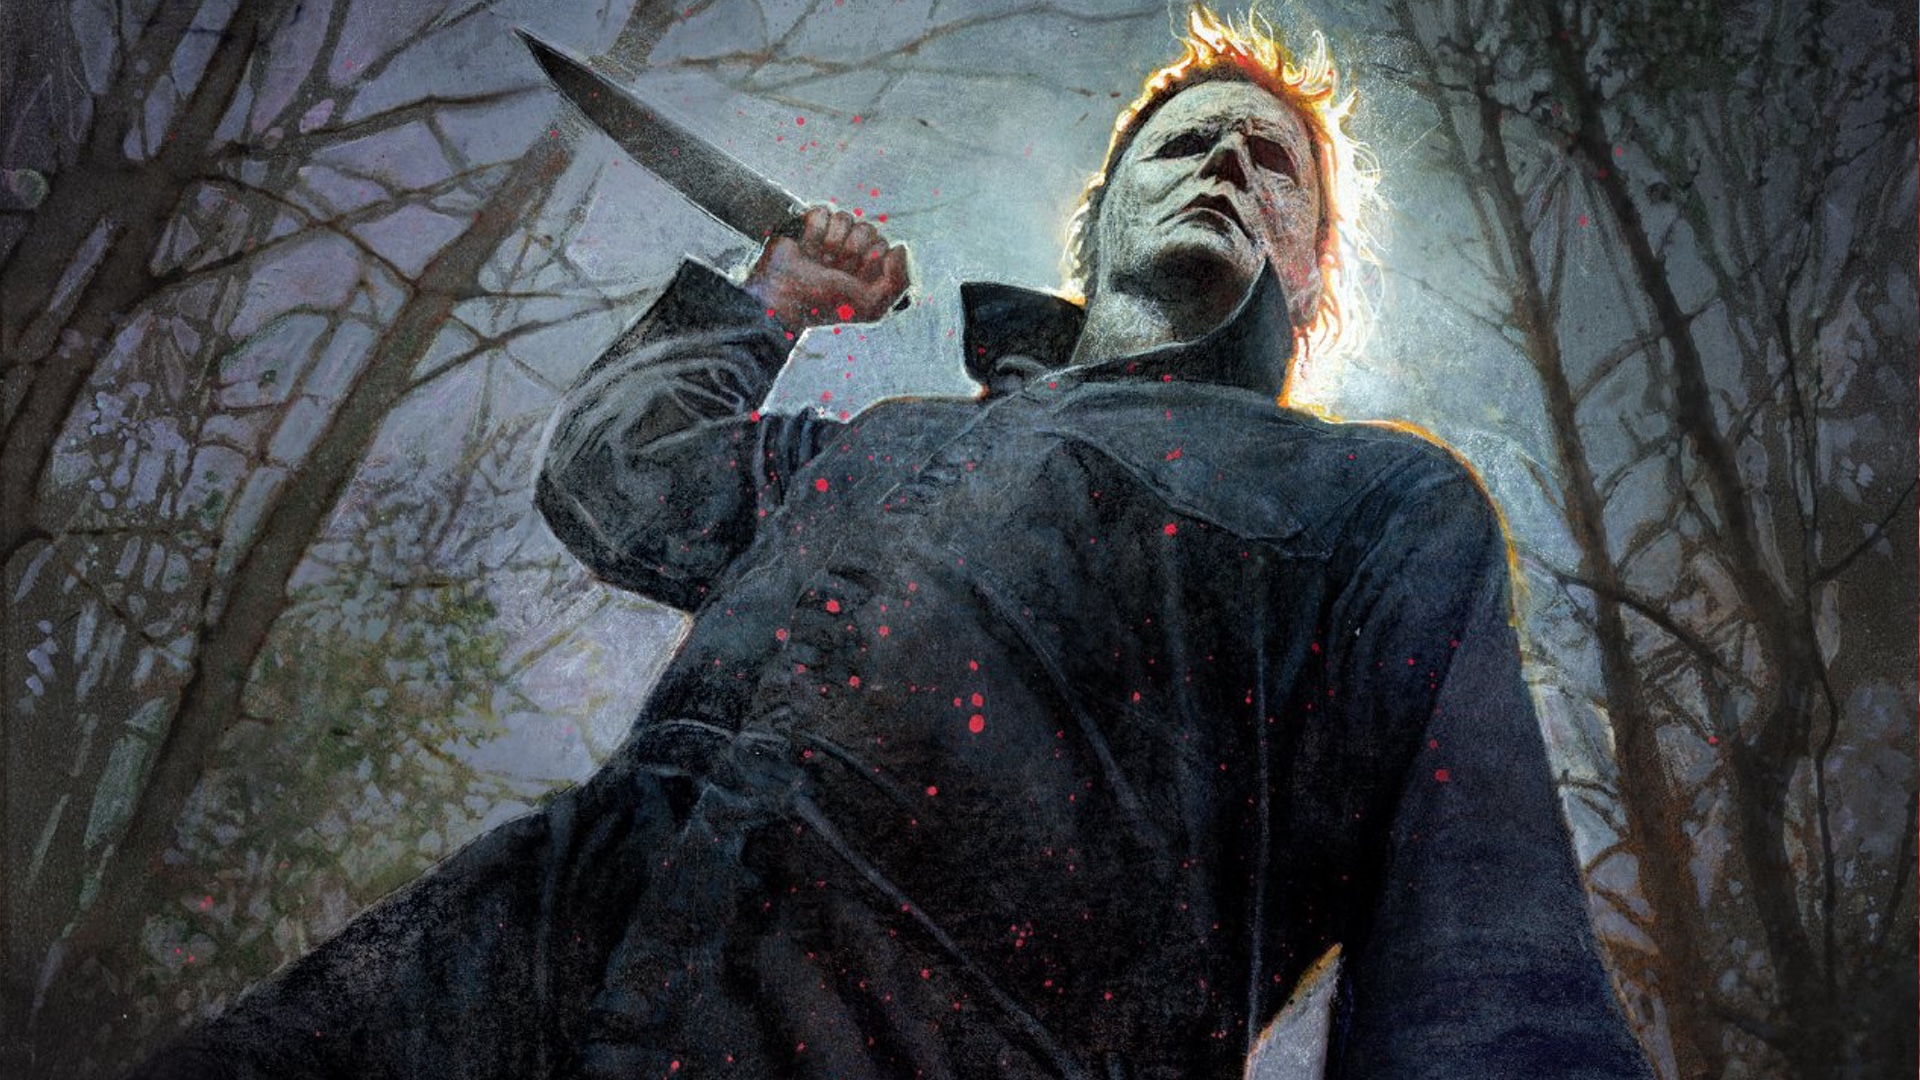 c739b0bec0dff4881daf559104f3b1d7 michael myers is read to kill in this comic con poster for halloween social